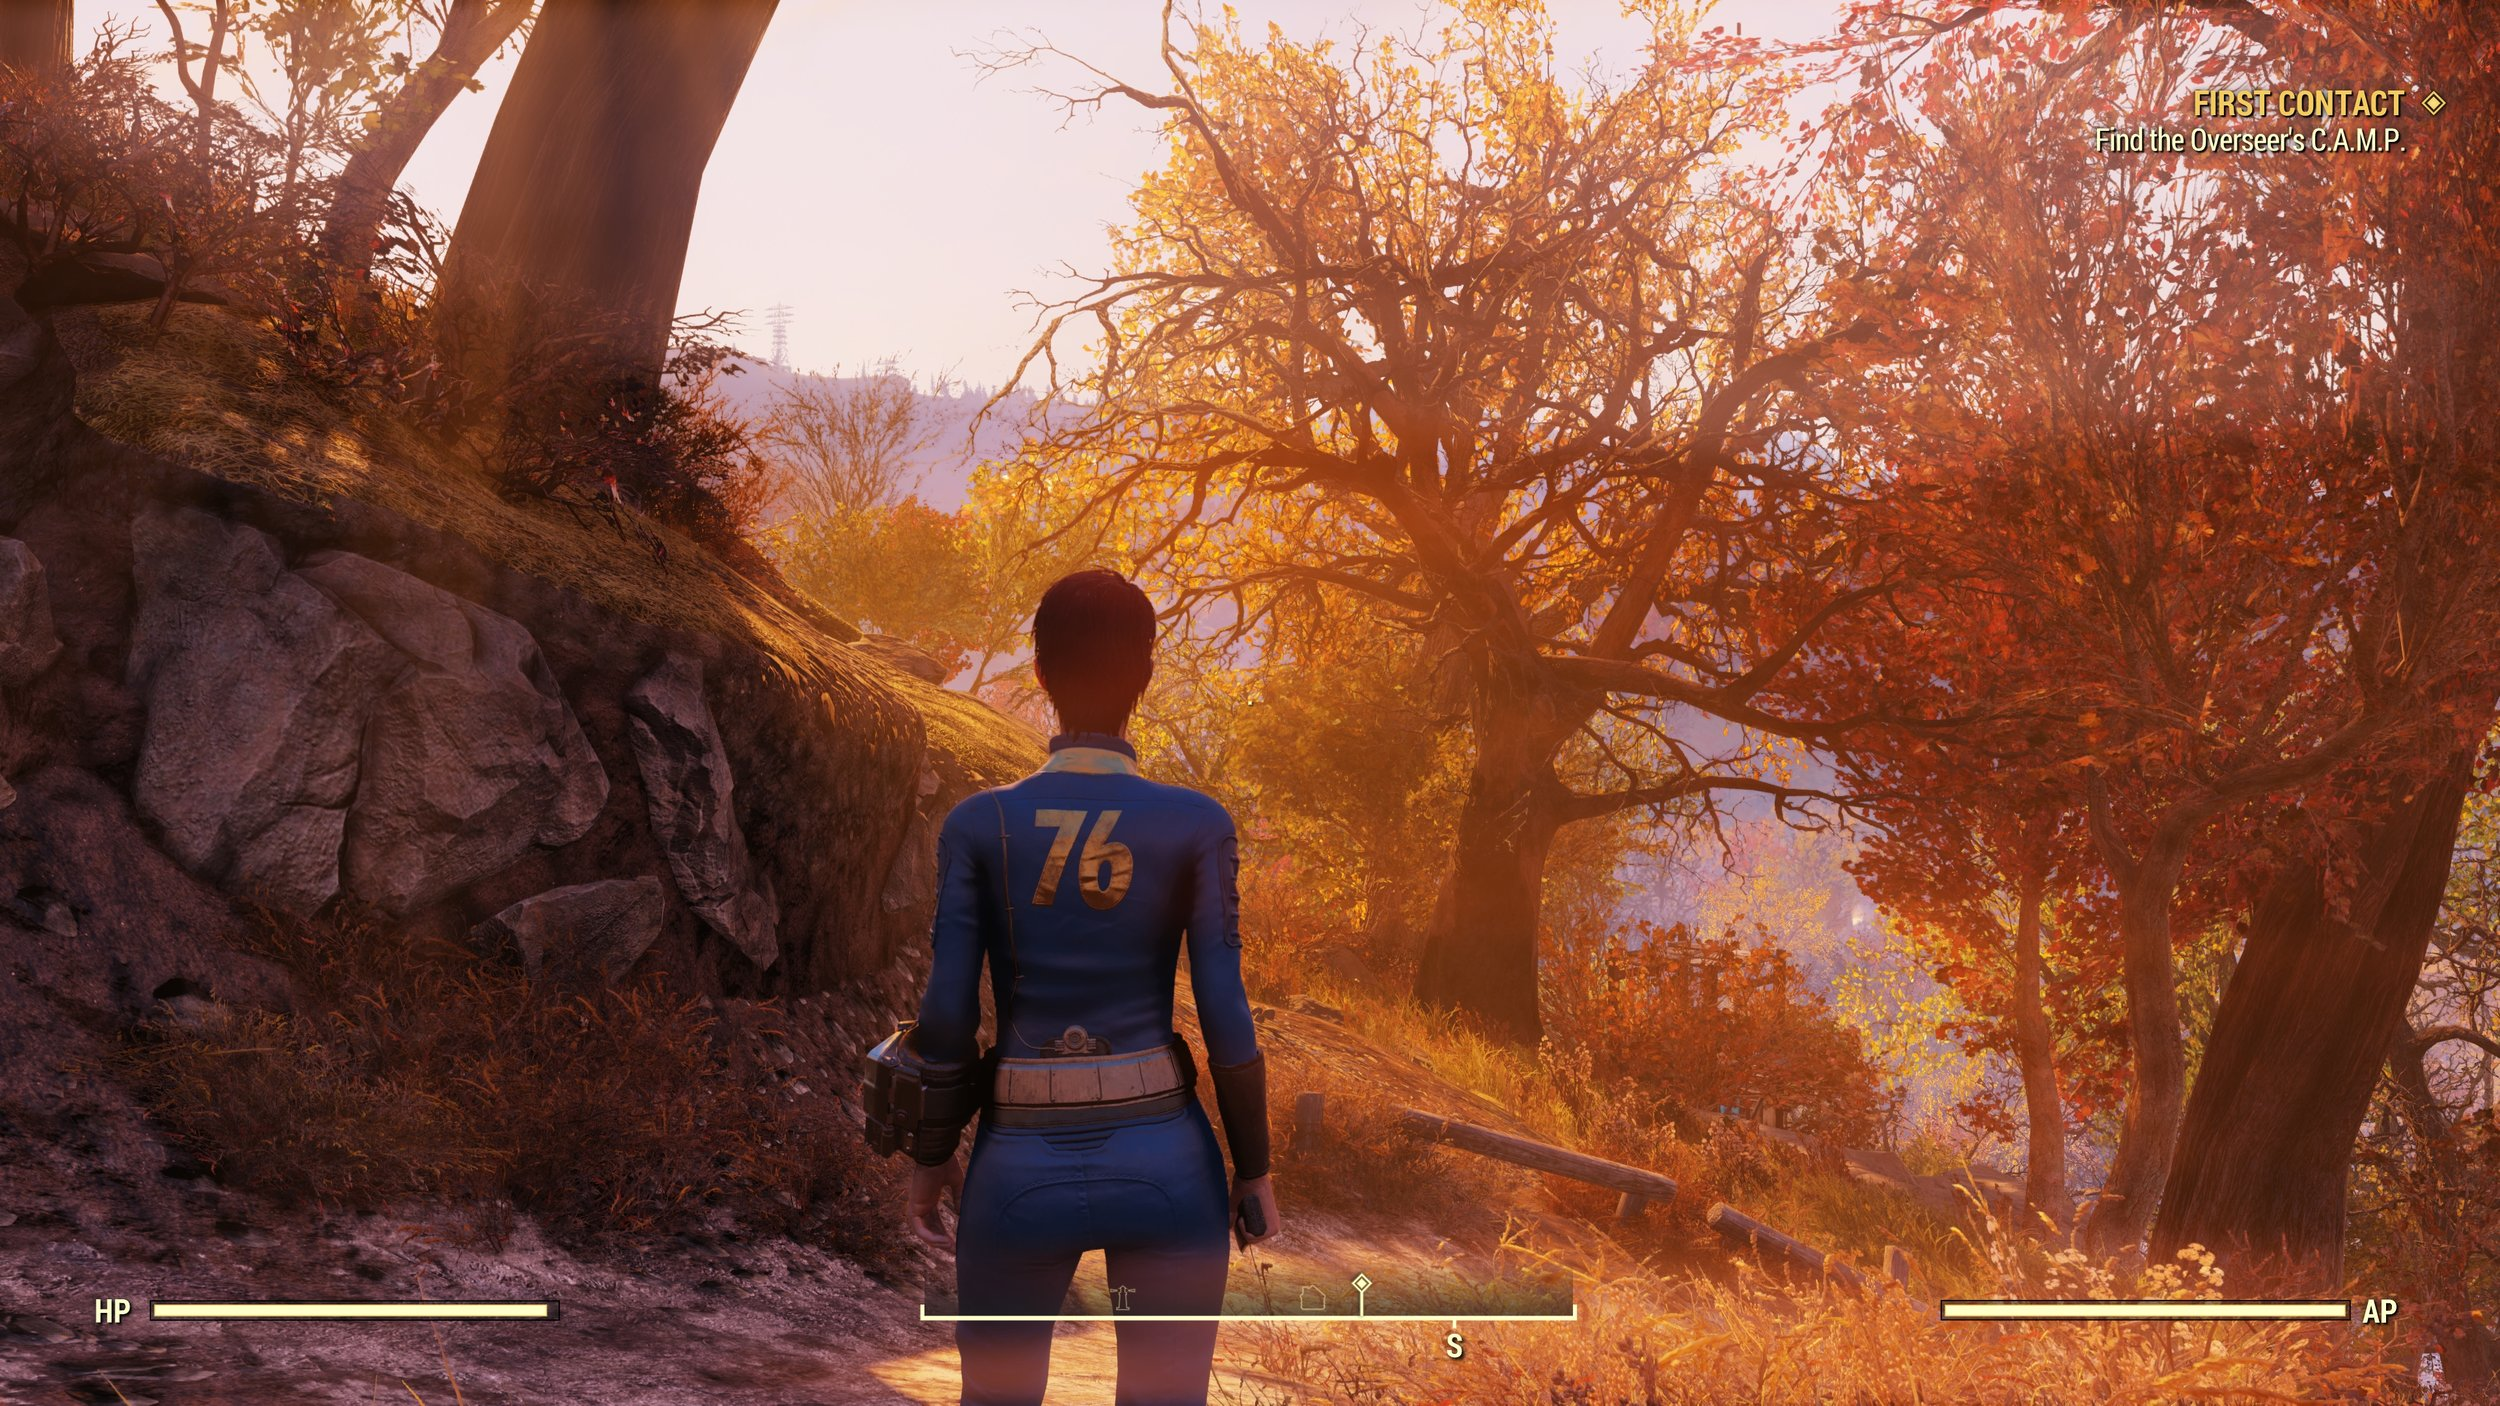 I thought Fallout games only had greys and dull greens. What is this new devilry?!